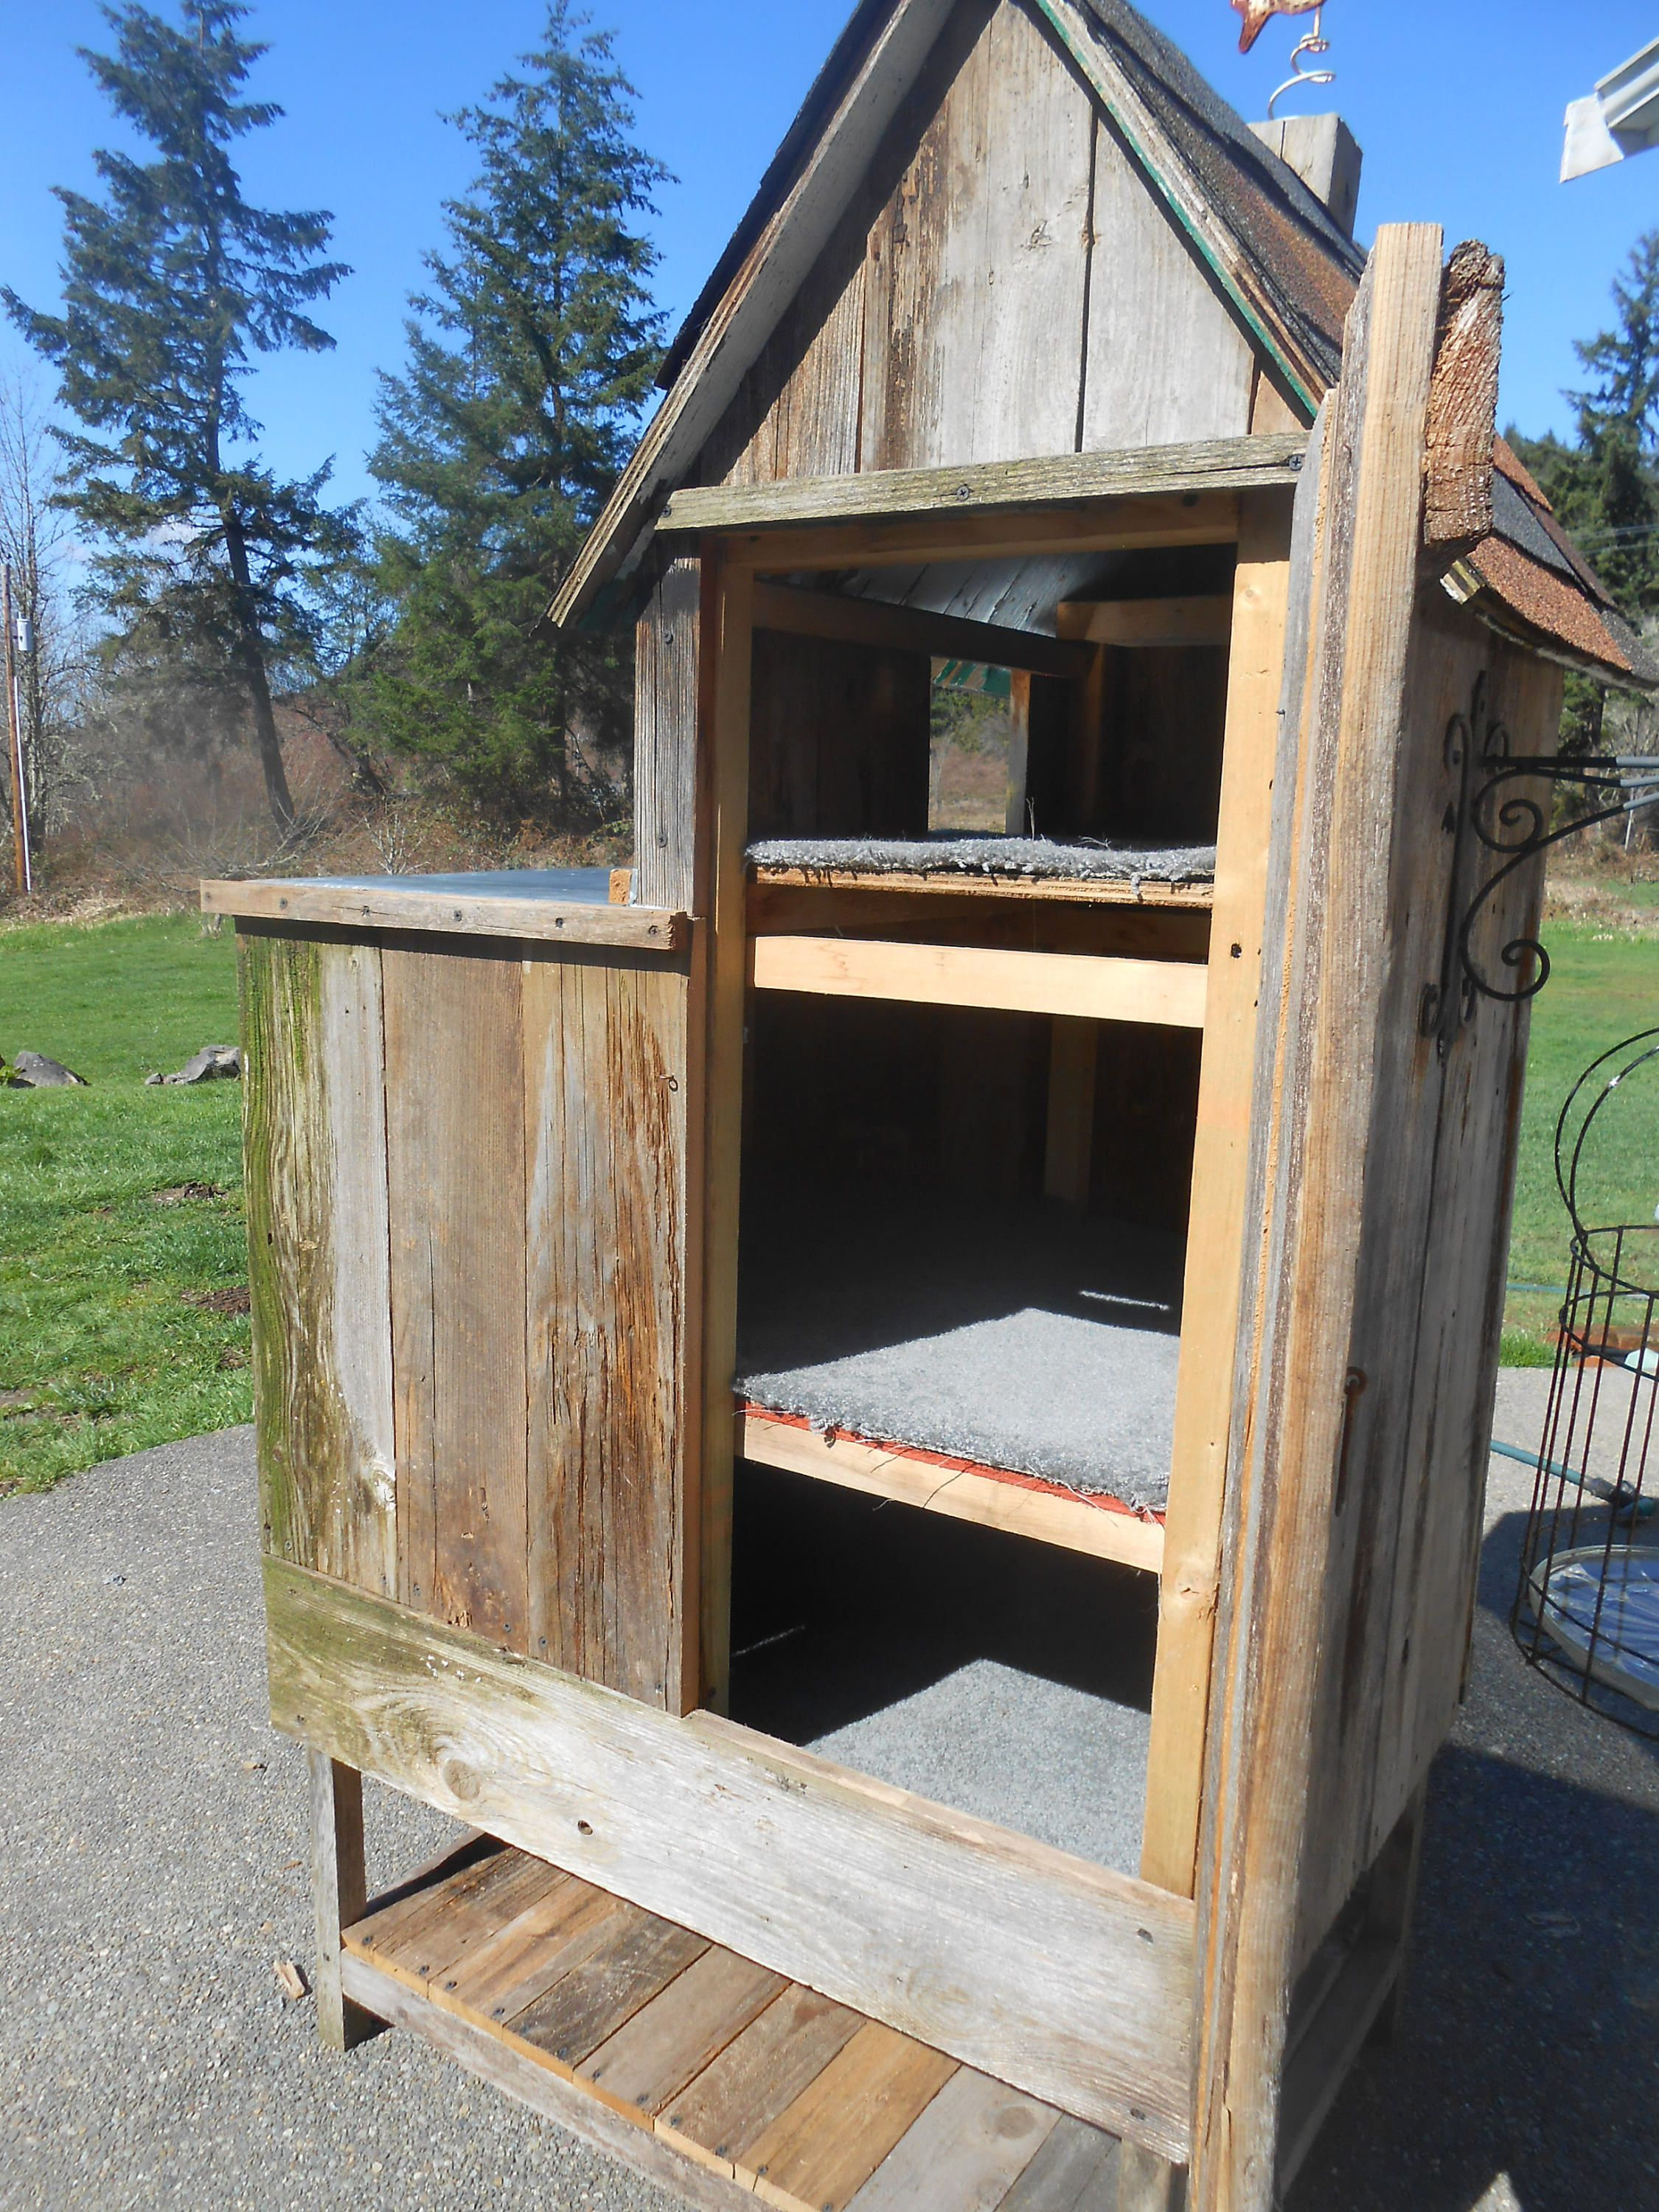 Outdoor Cat House Design Plans: Cat House, Outdoor Cat Home, 3 Stories, Reclaimed Barn